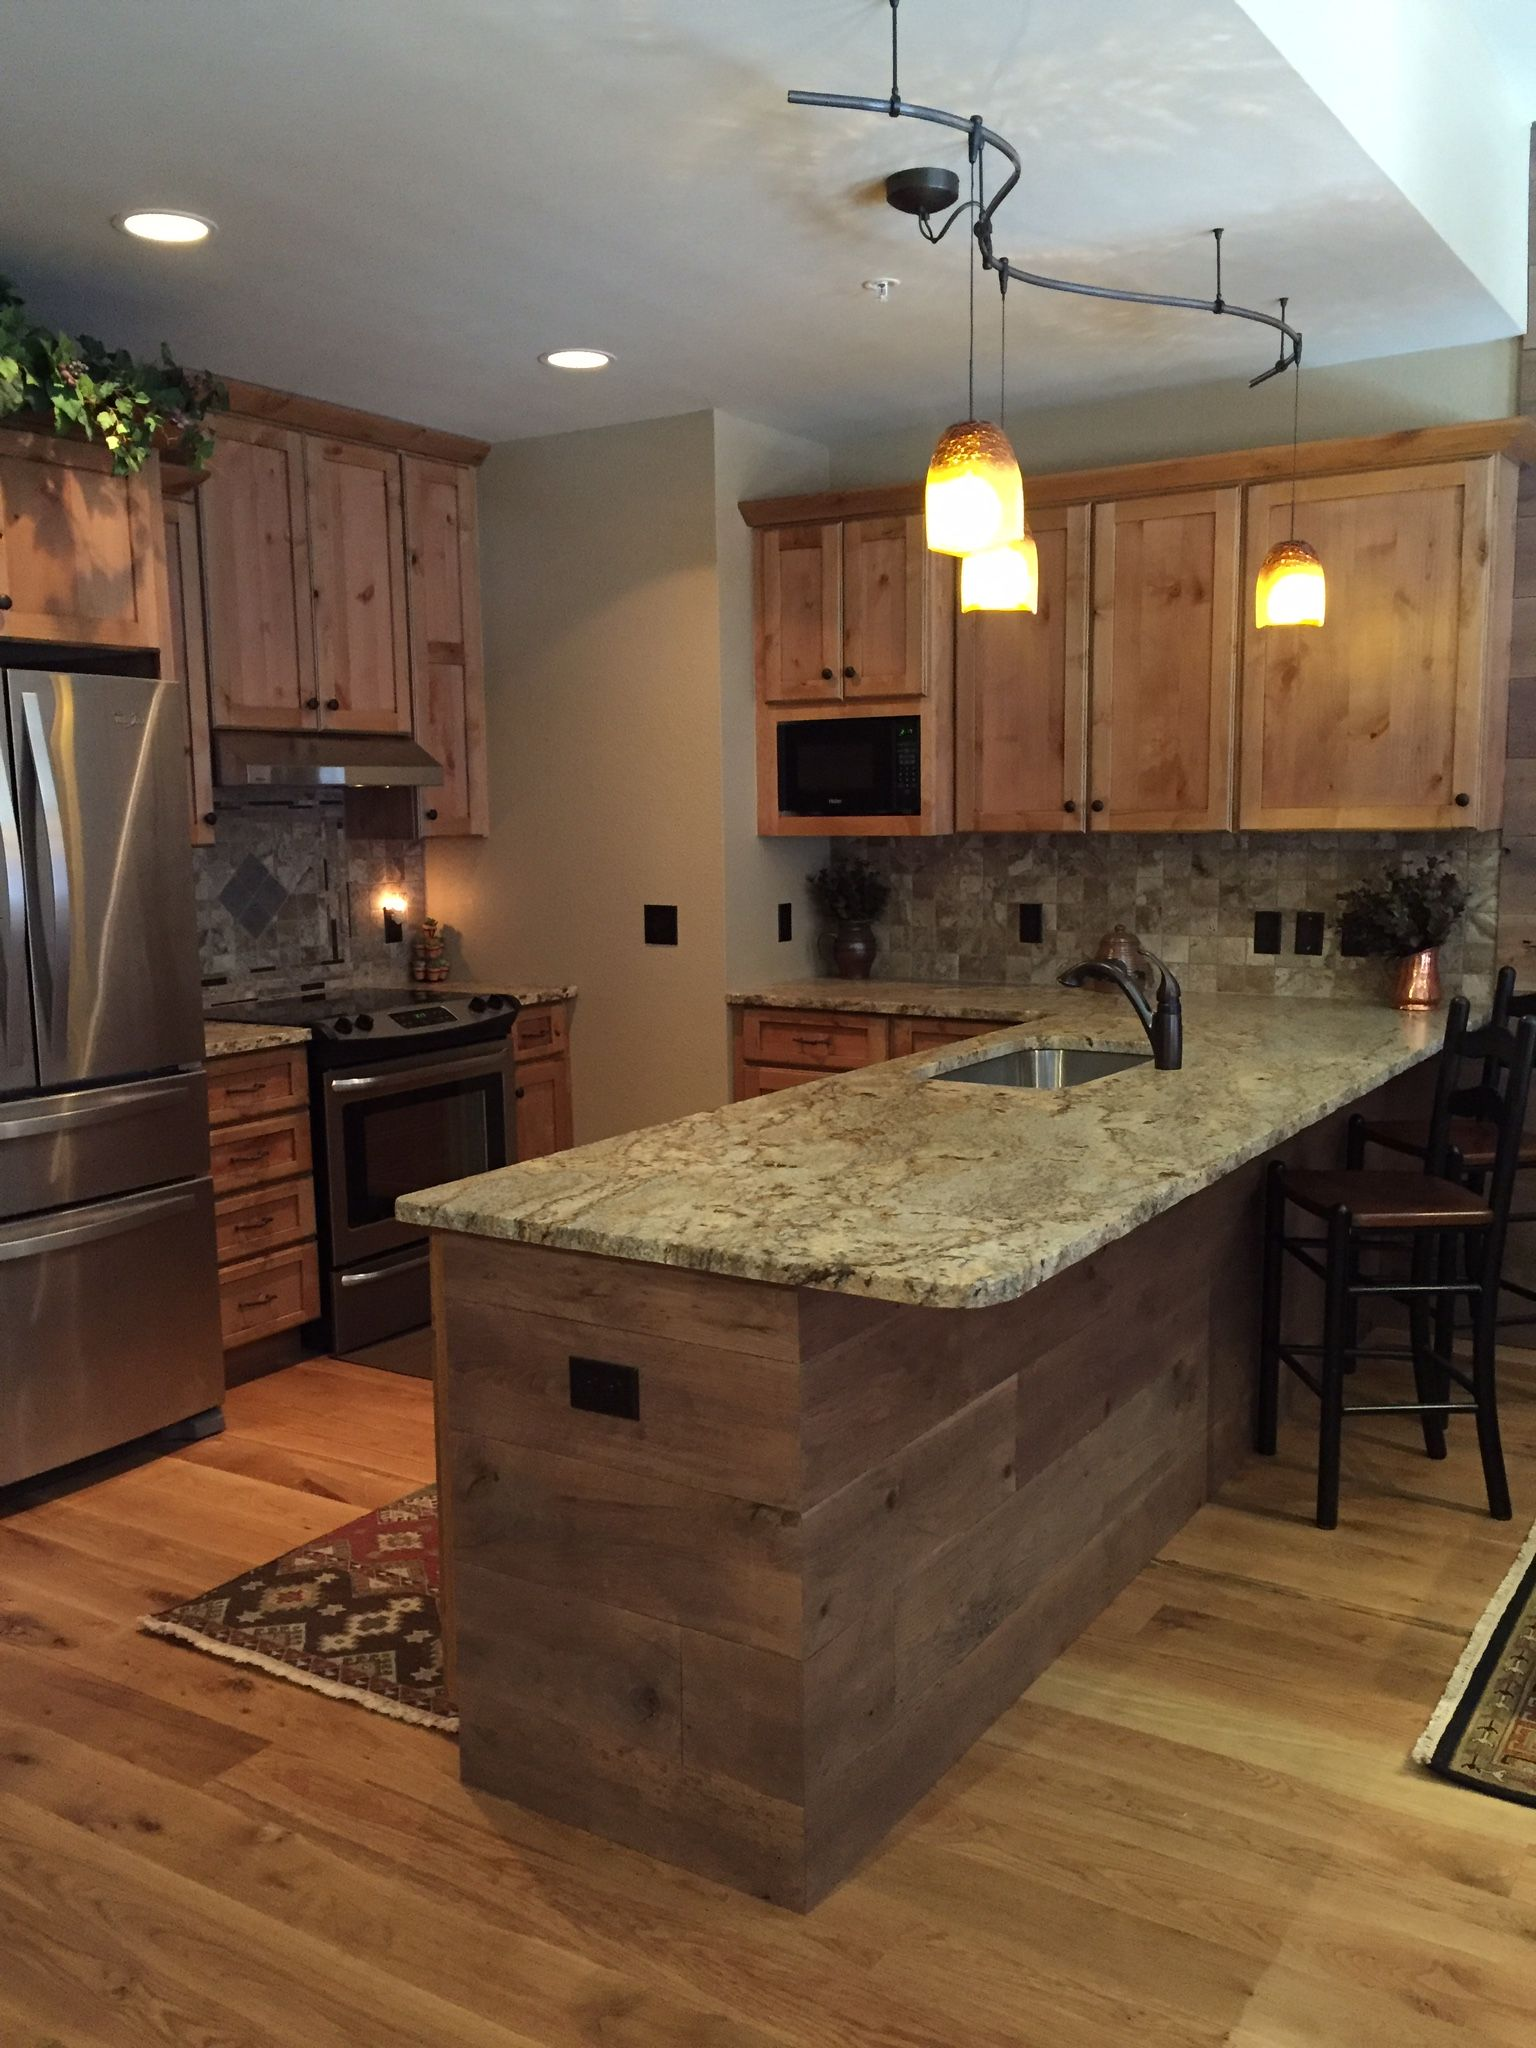 Granite Countertops With Plenty Of Cabinet Space Dishwasher